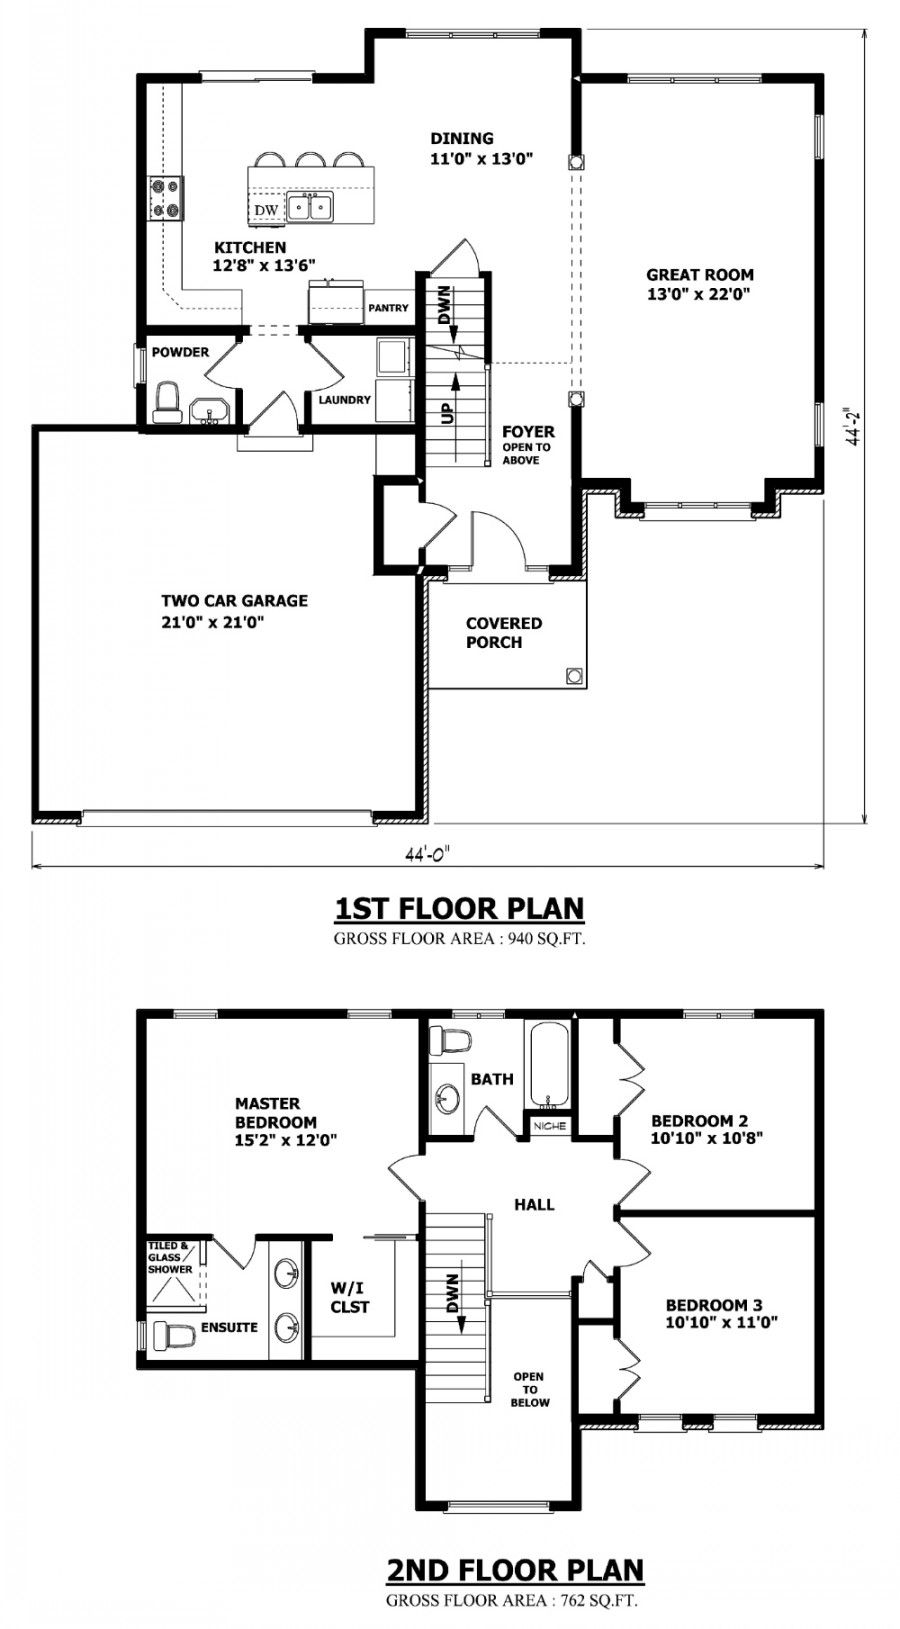 Home designs custom house plans stock house plans amp for 2 storey house plans